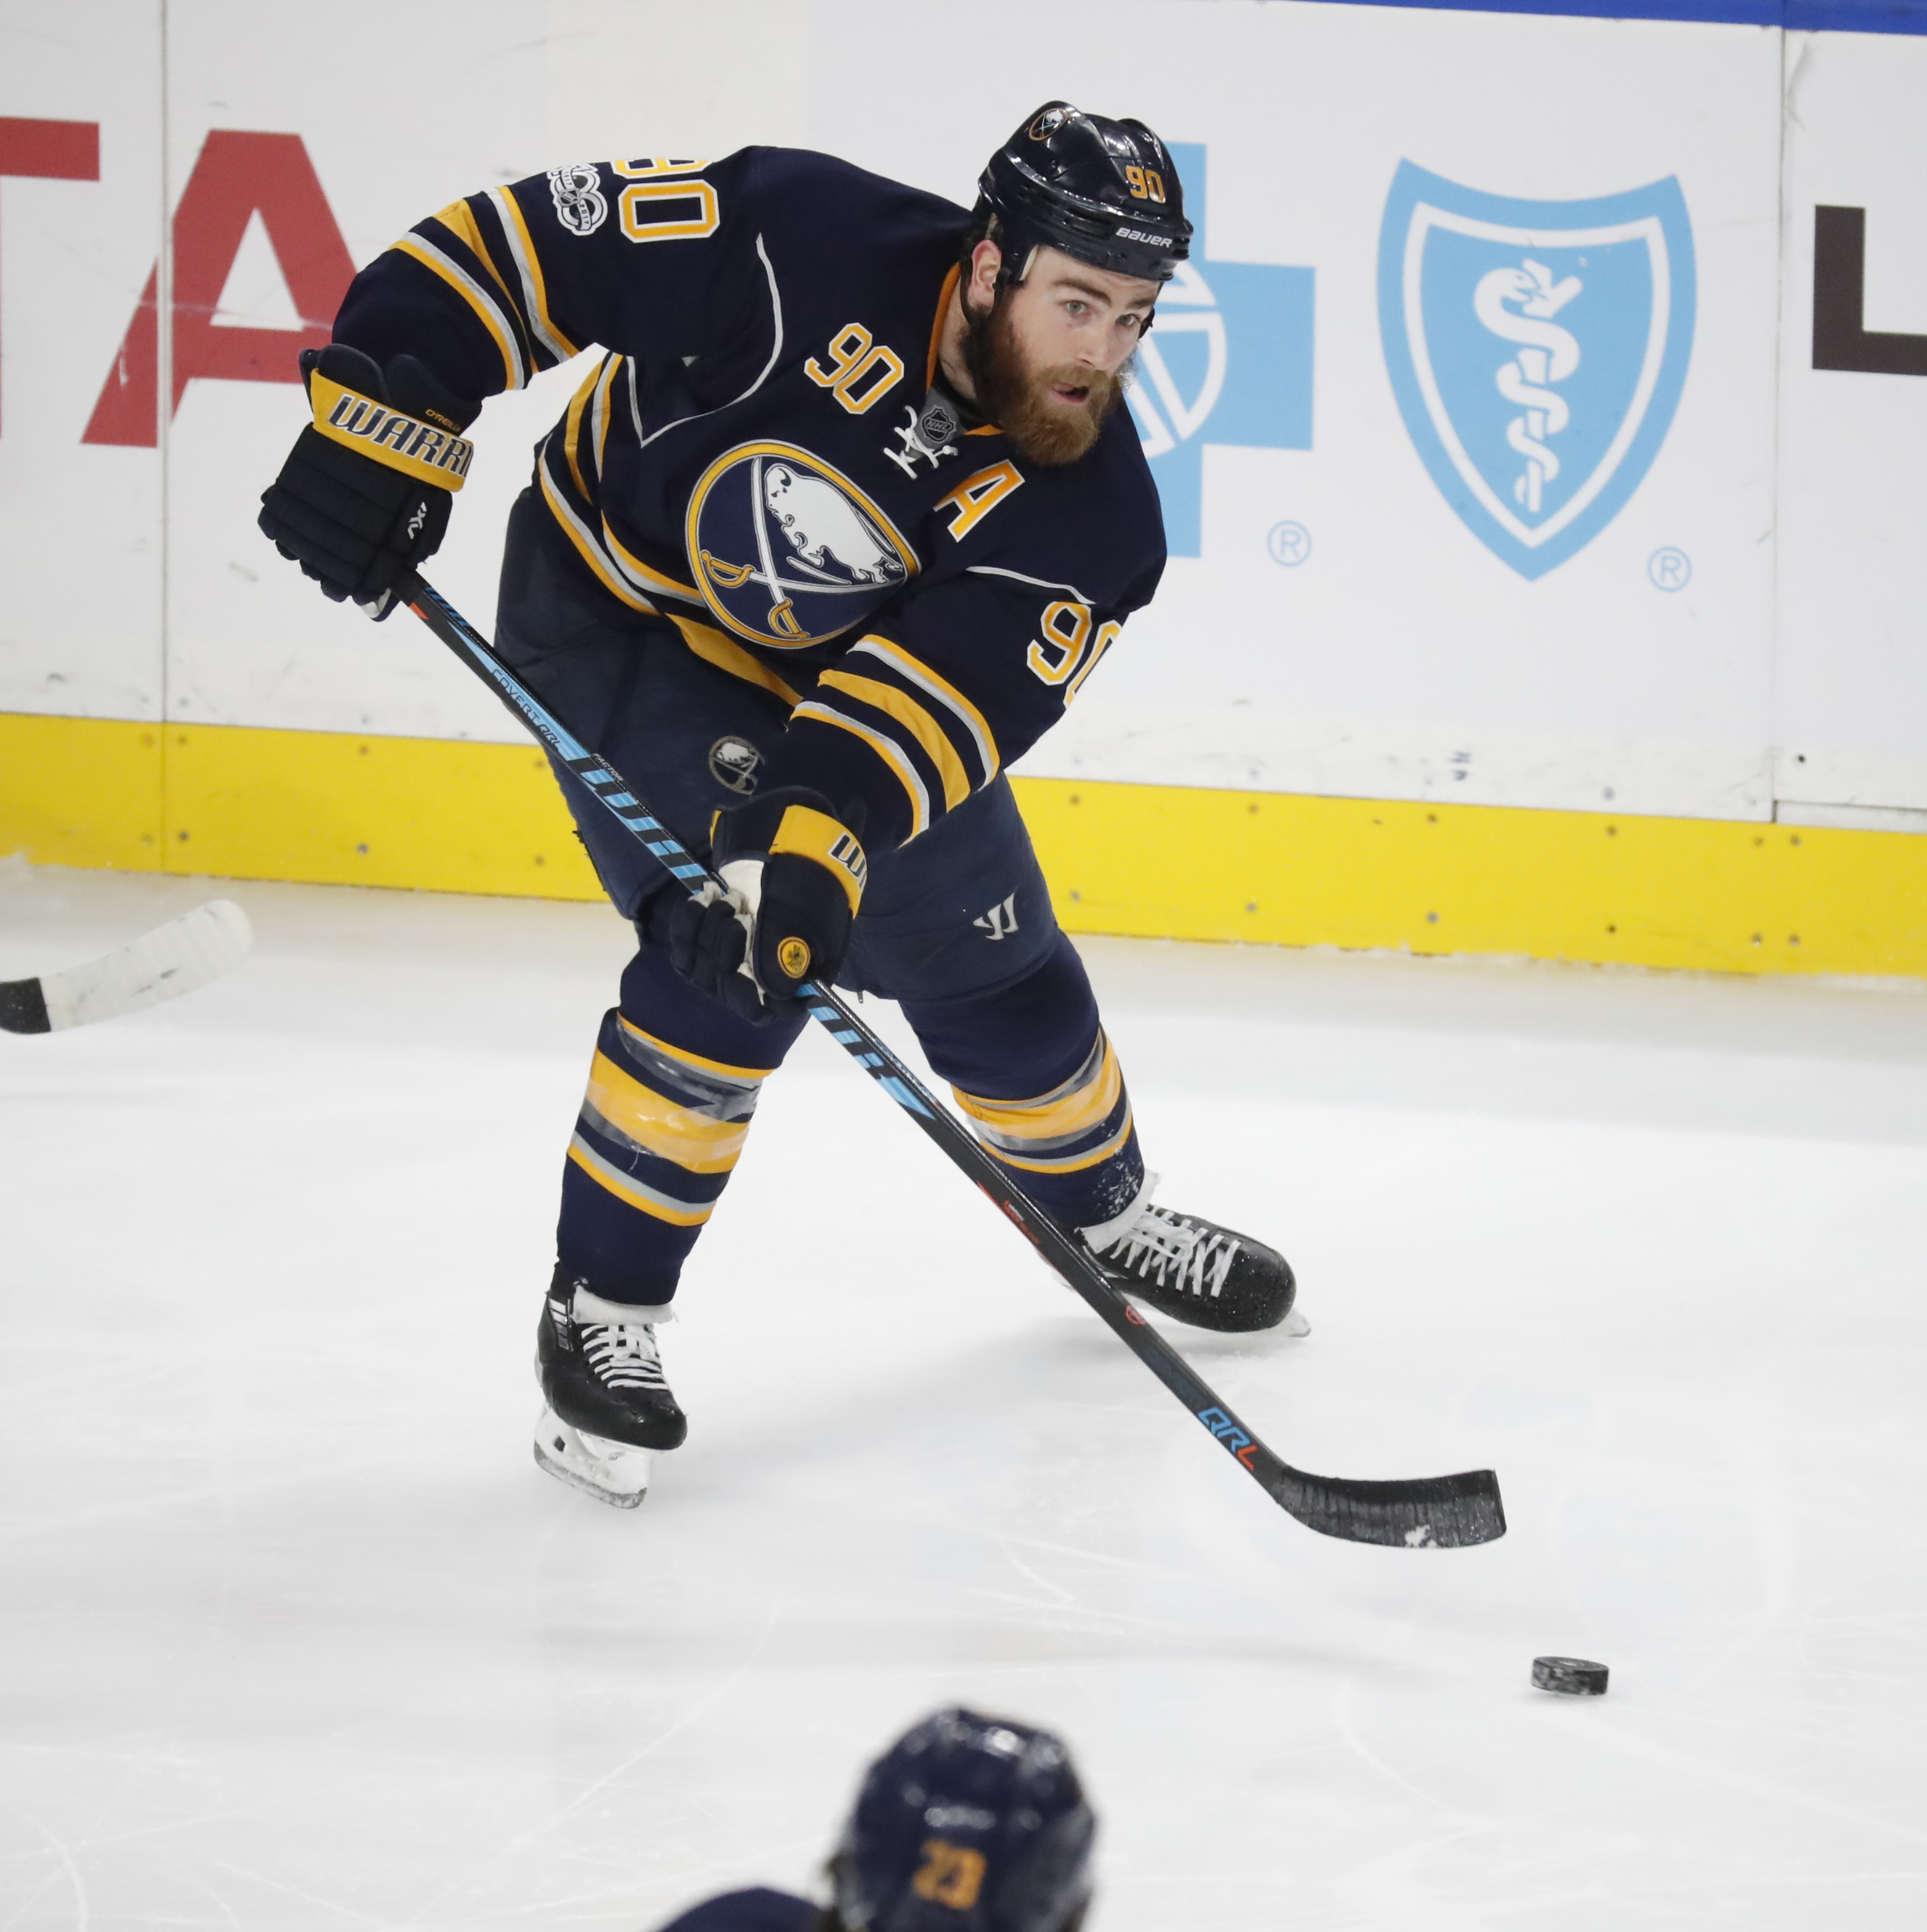 Ryan O'Reilly had his third straight multipoint game Tuesday against Philadelphia. (Harry Scull Jr./Buffalo News)